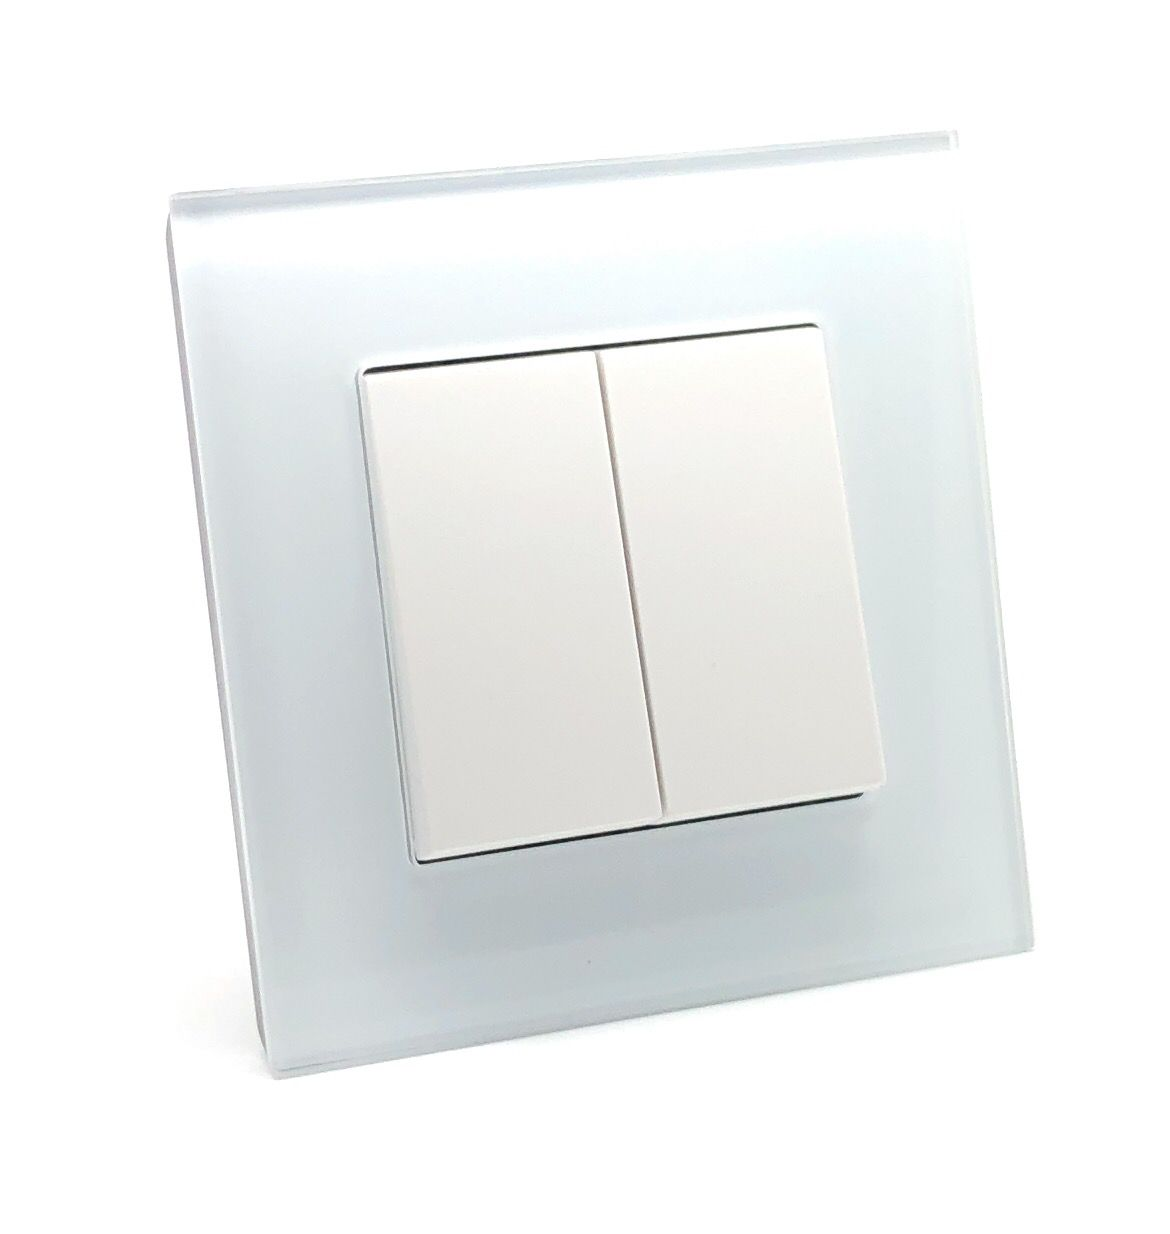 Rocker Light Switch >> Illucio 2 Gang 1 Or 2 Way 10 Amp On Off Rocker Light Switch White